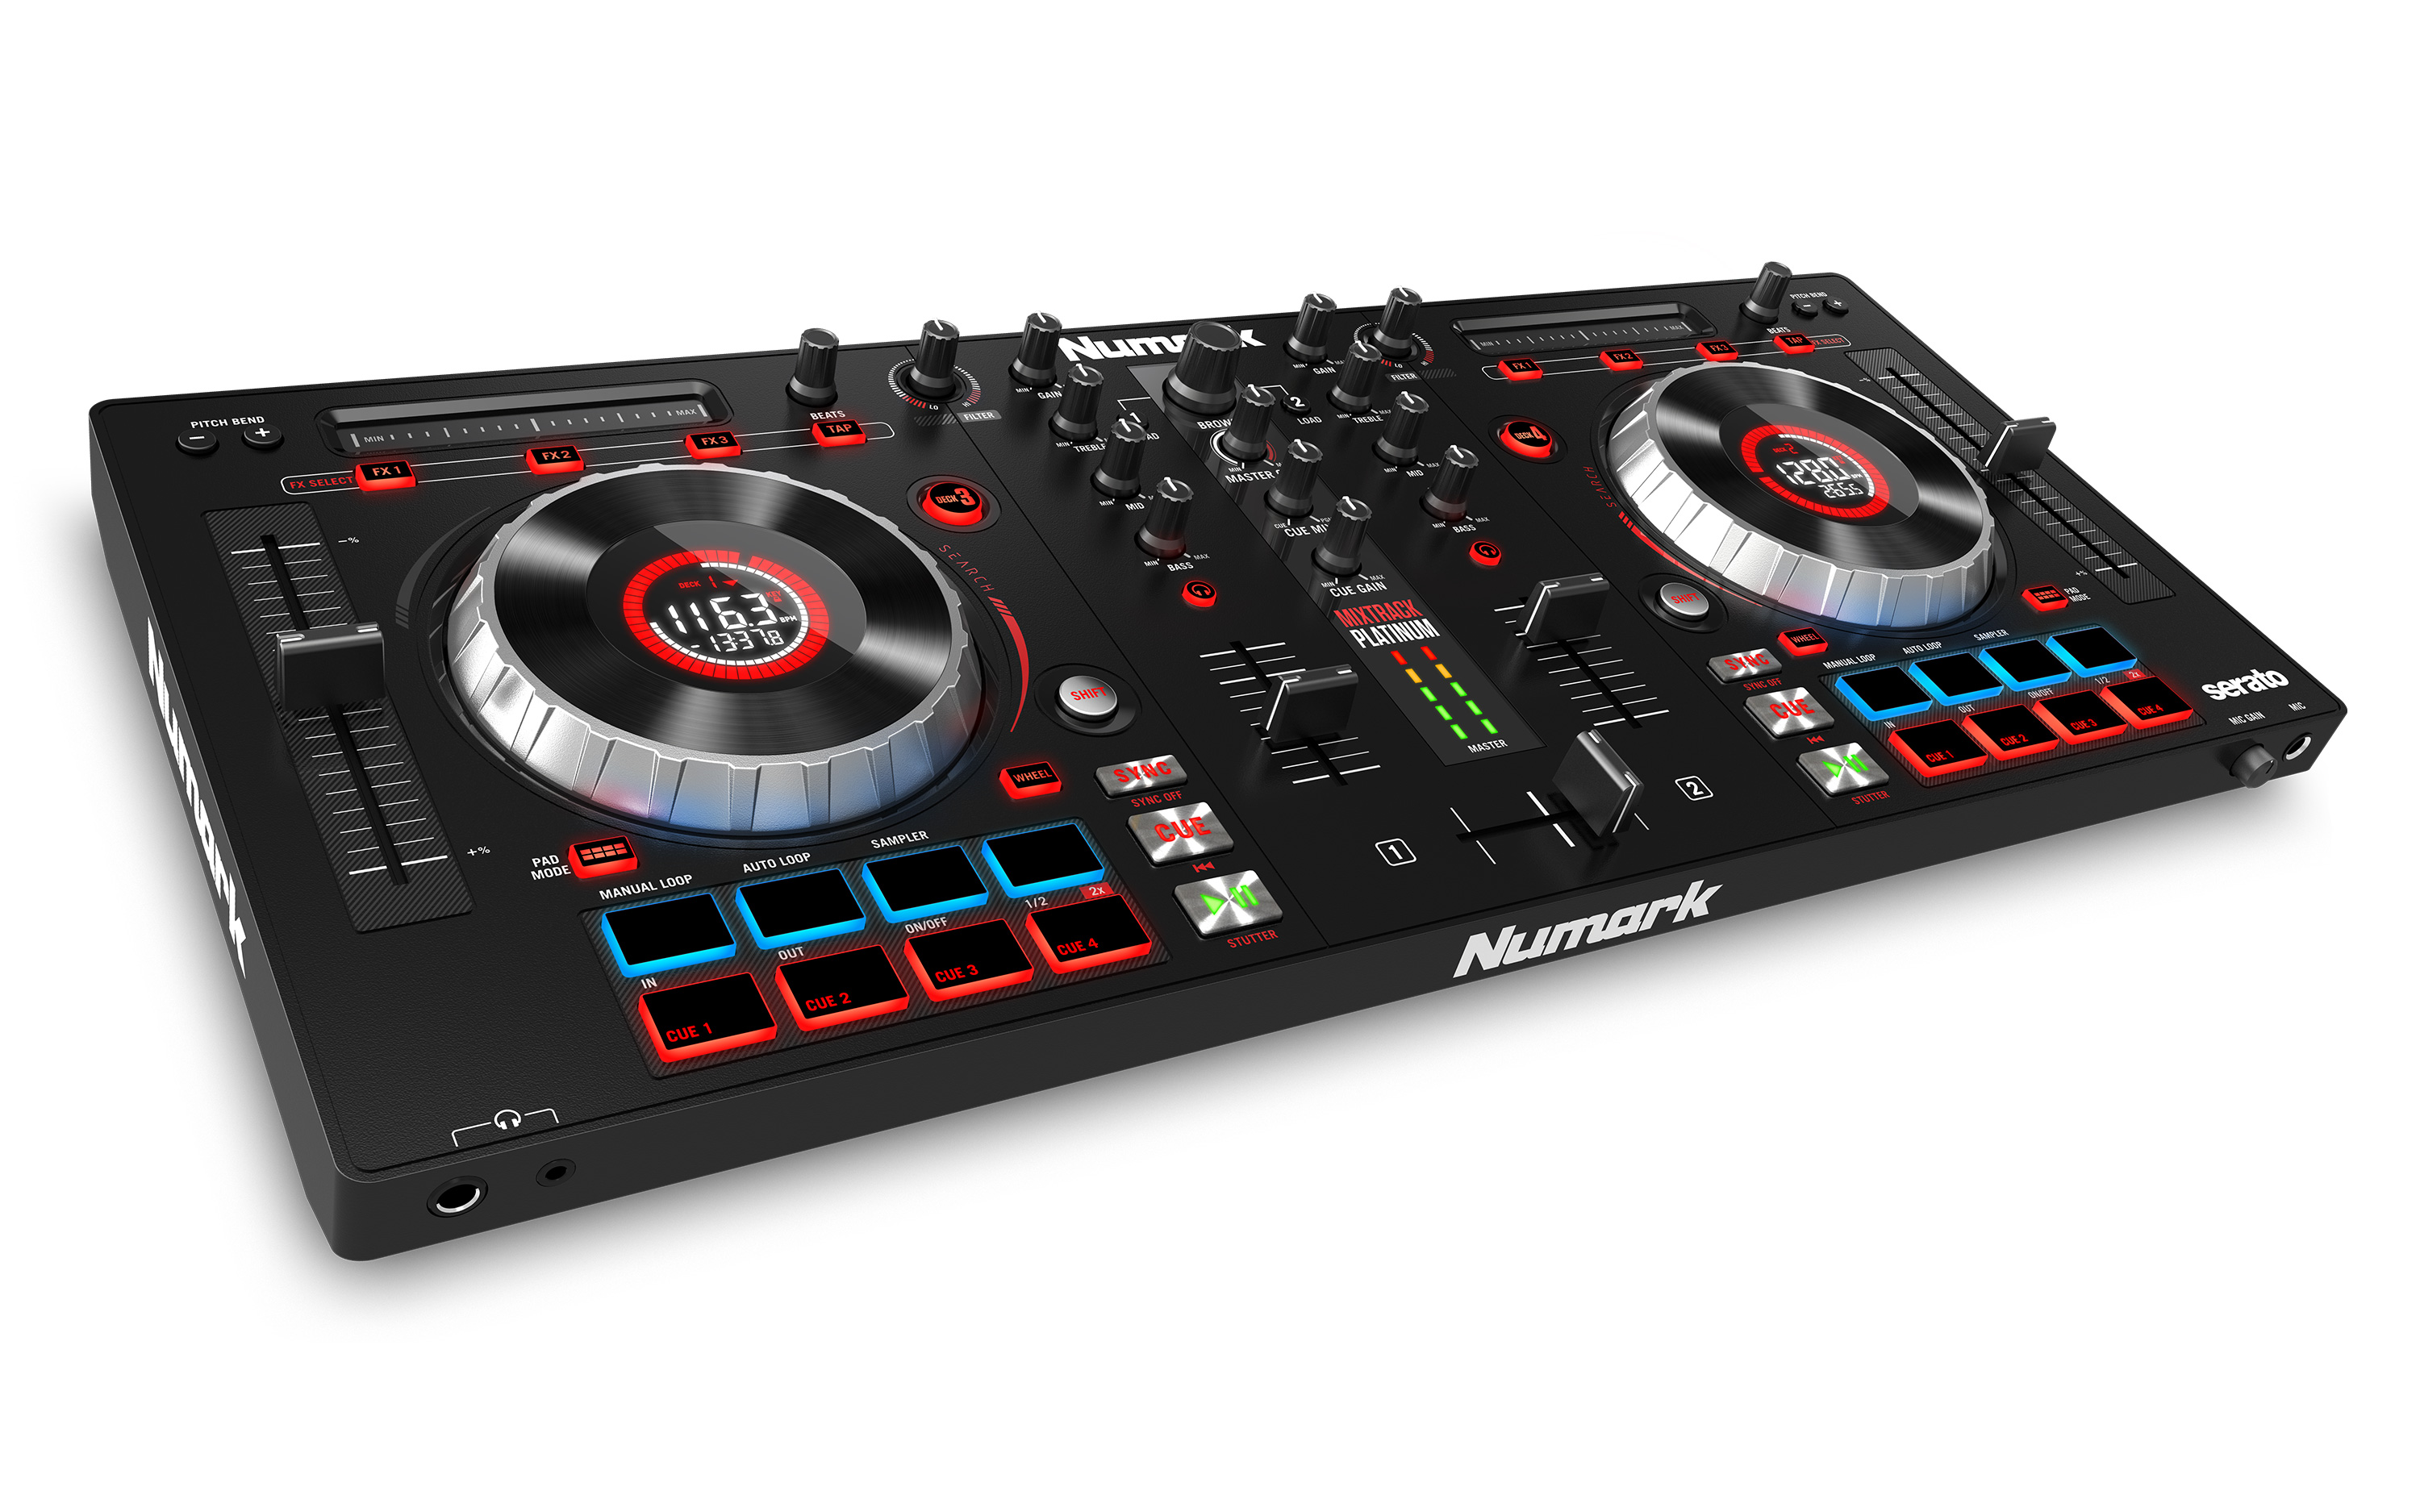 Mixtrack Platinum DJ Controller With Jog Wheel Display | Numark